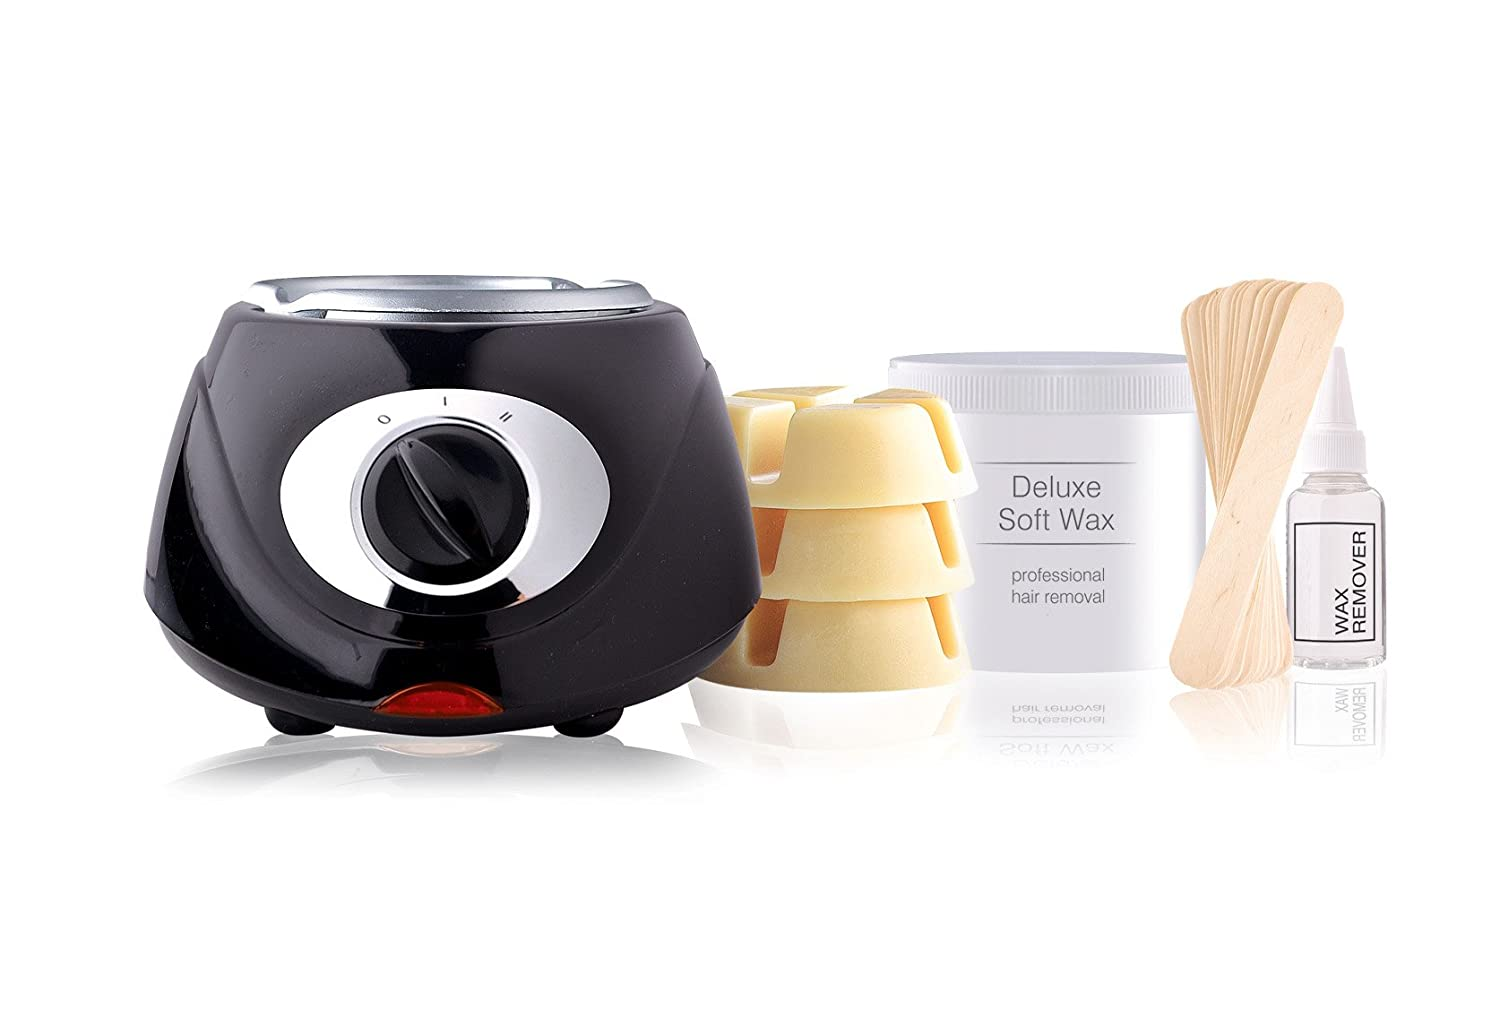 Rio Beauty Total Body Waxing Hair Removal Kit 5019487083272 CWAX Shaving & Hair Removal Body hair